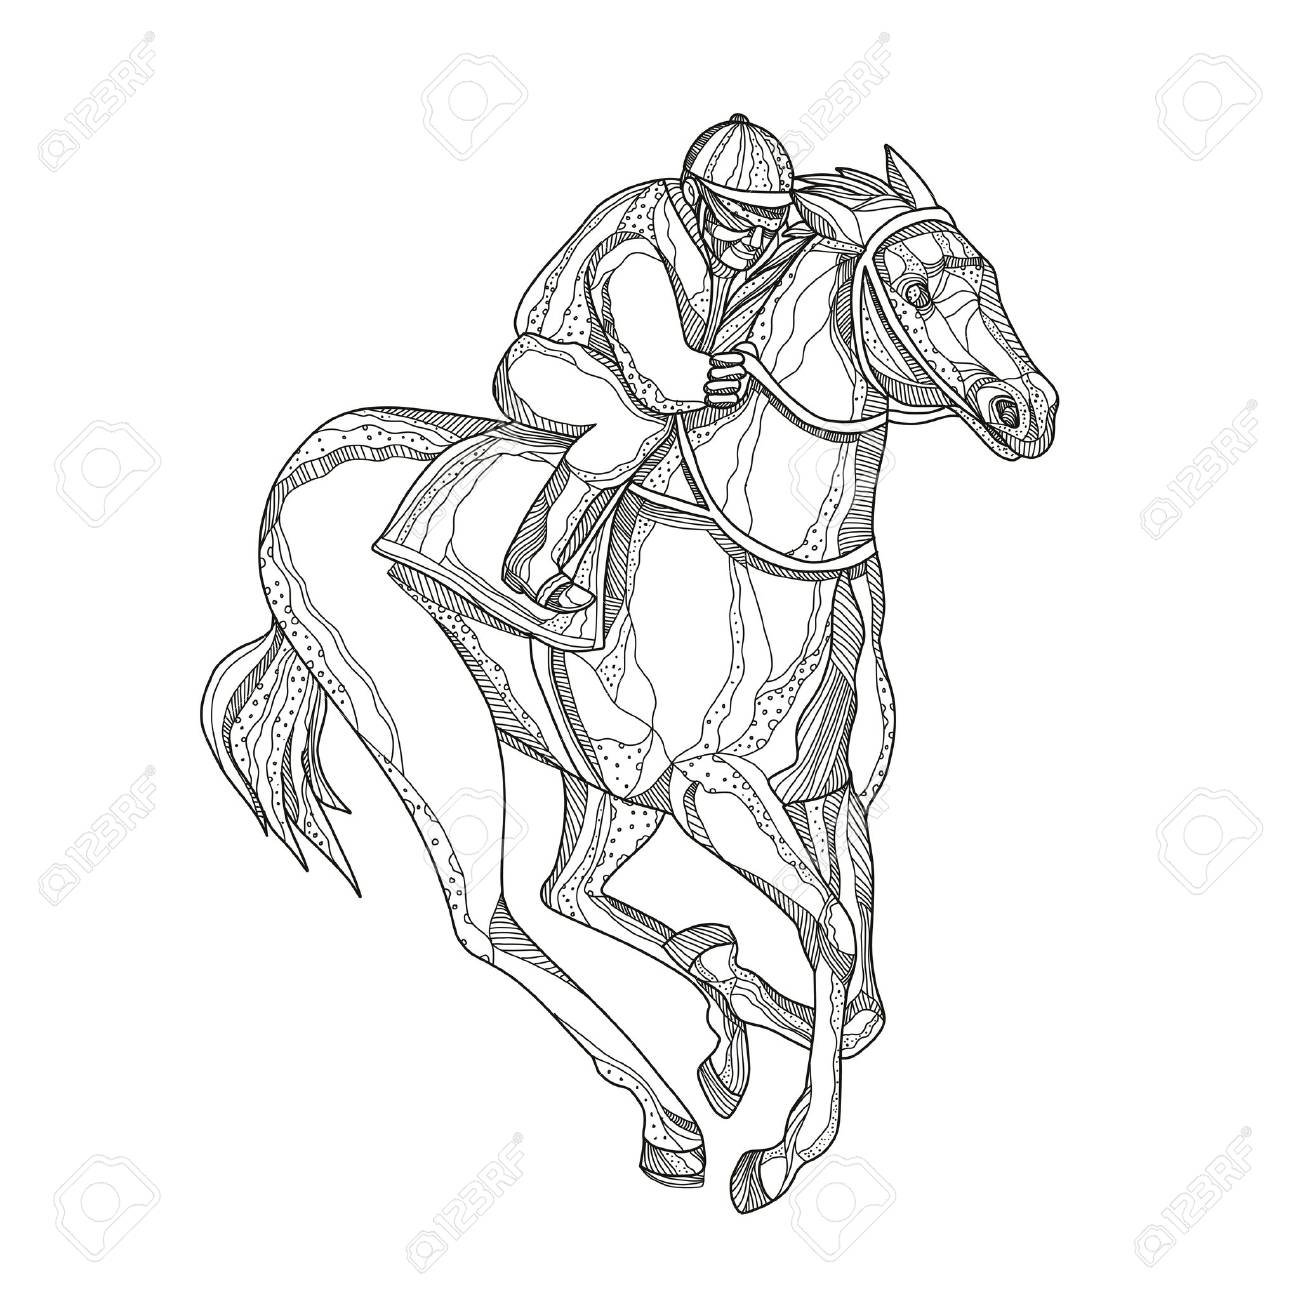 Doodle Art Illustration Of A Jockey Or Equestrian Riding Horse Royalty Free Cliparts Vectors And Stock Illustration Image 95571276